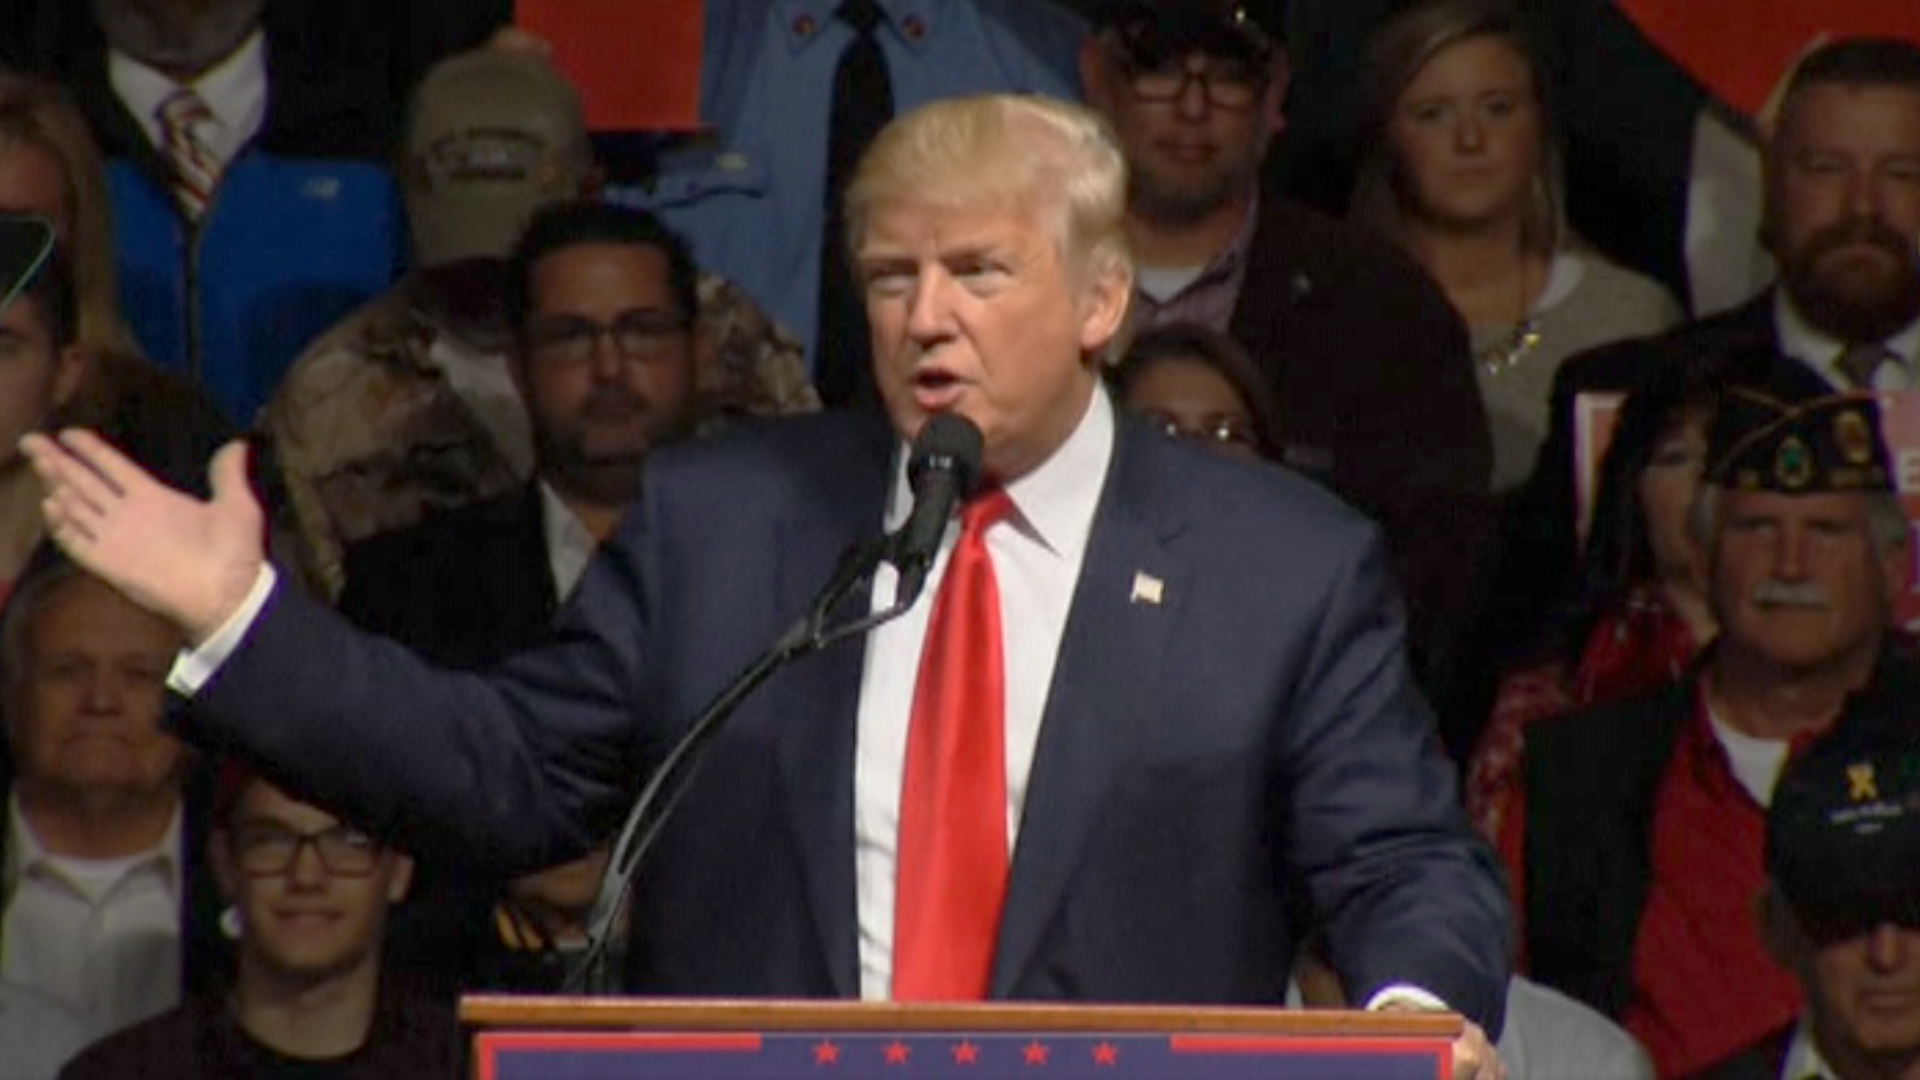 Trump: 'Election is being rigged'